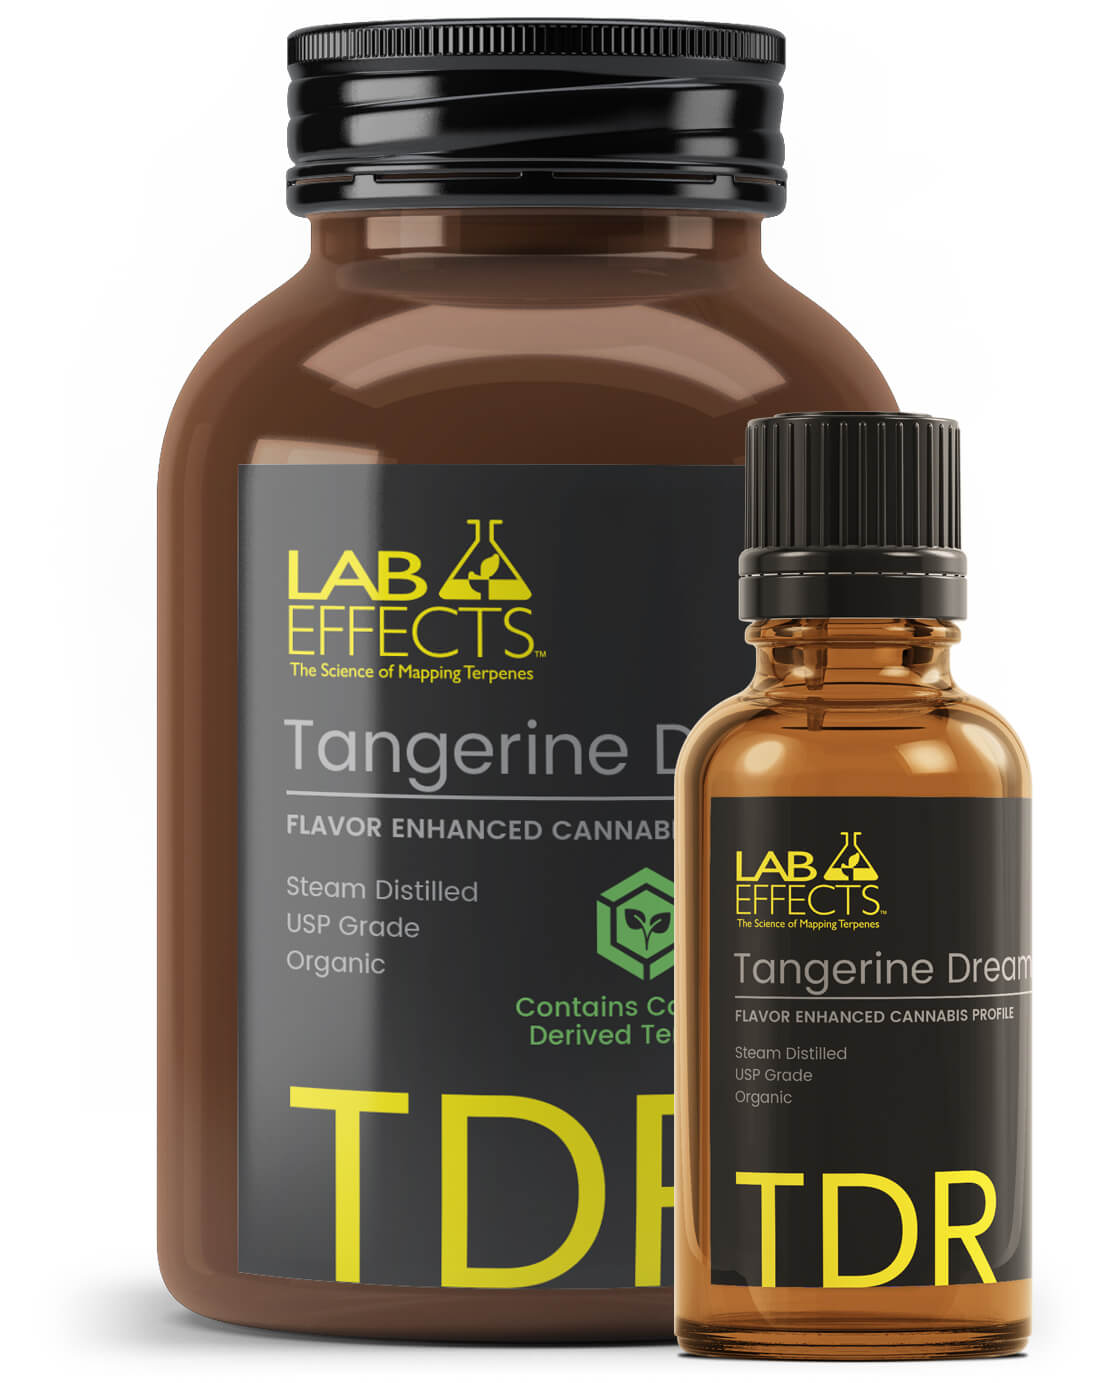 Lab Effects Tangerine Dream Terpenes